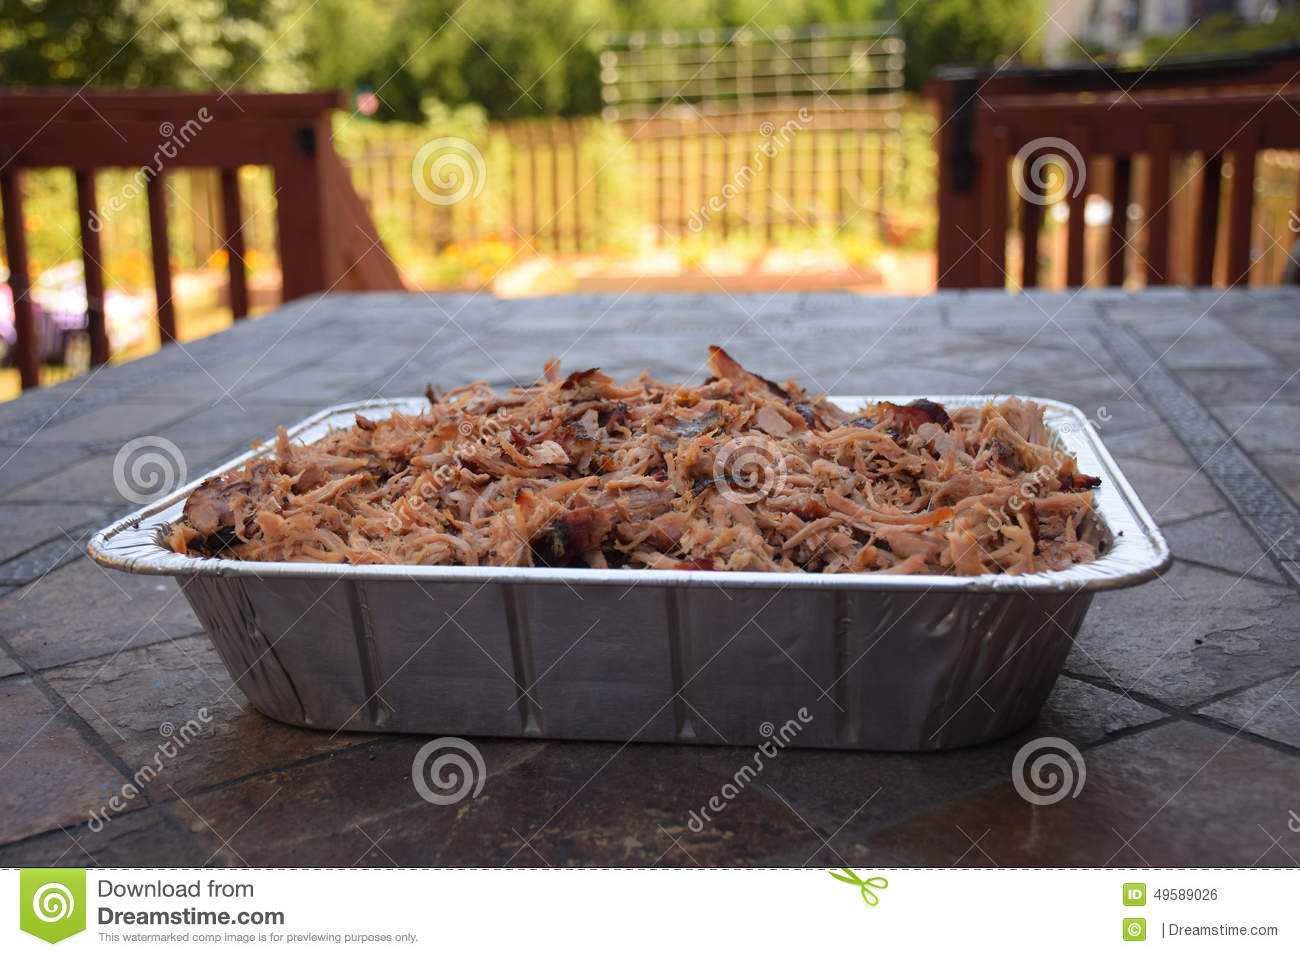 Pulled Pork Kamado.Smoked Pulled Pork Cooked Over Kamado Grill Stock Photo Image Of